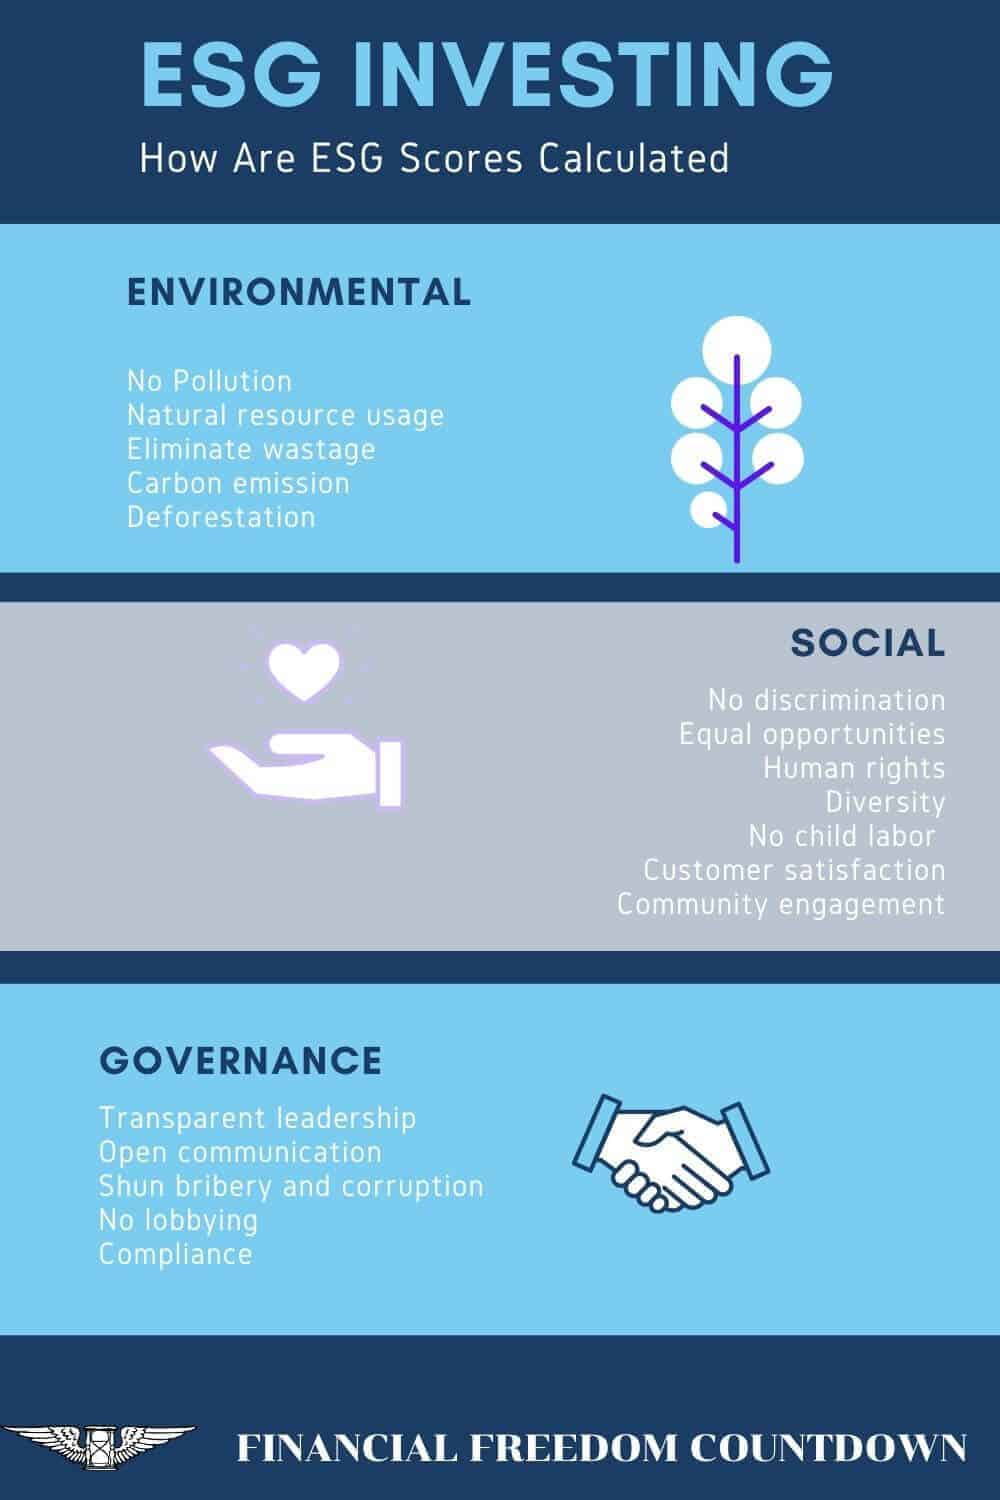 For ESG Investing, companies are ranked based on their environmental, social, governance impacts and assigned a score known as the ESG score